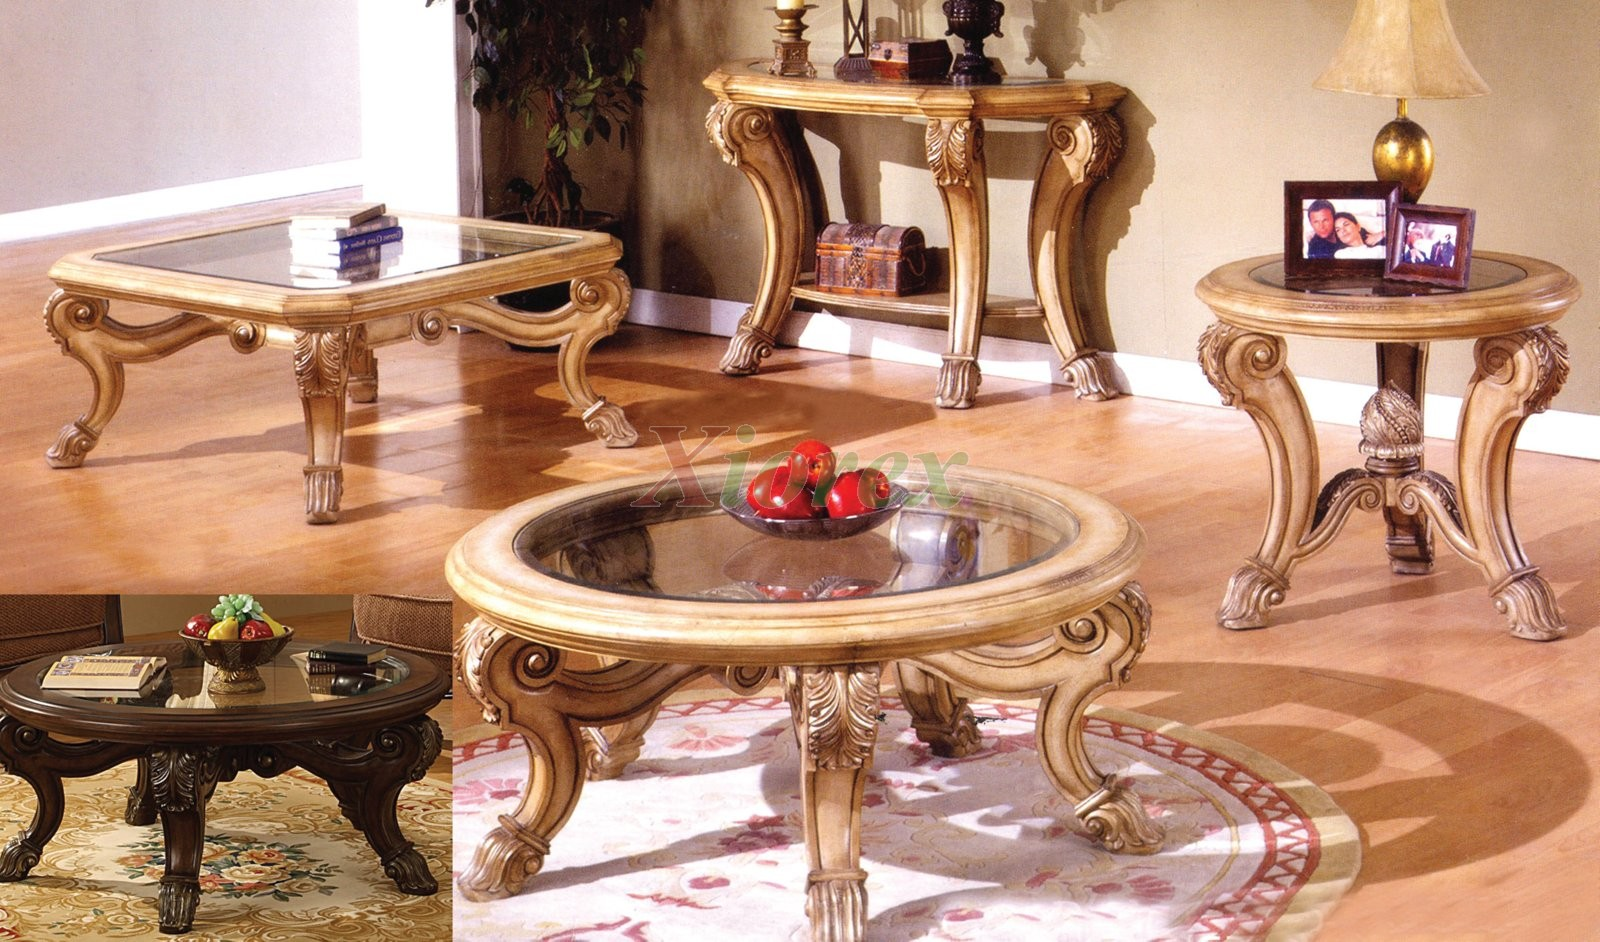 corvi glass top coffee table sets mississauga xiorex with saber legs matching end tables big round build nightstand painting ethan allen armchair home office furniture